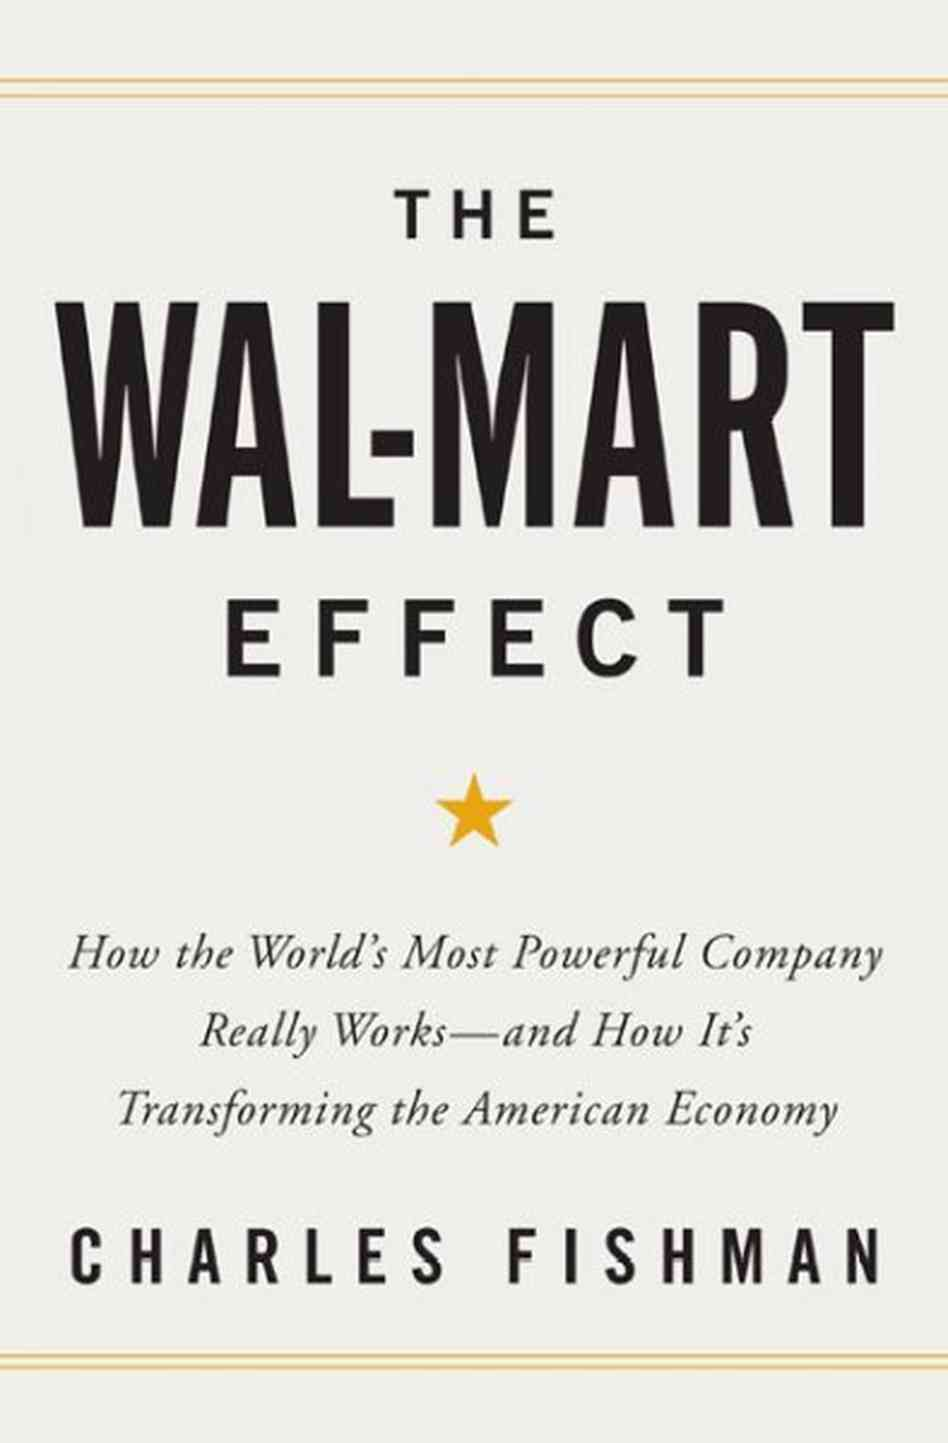 The walmart effect book